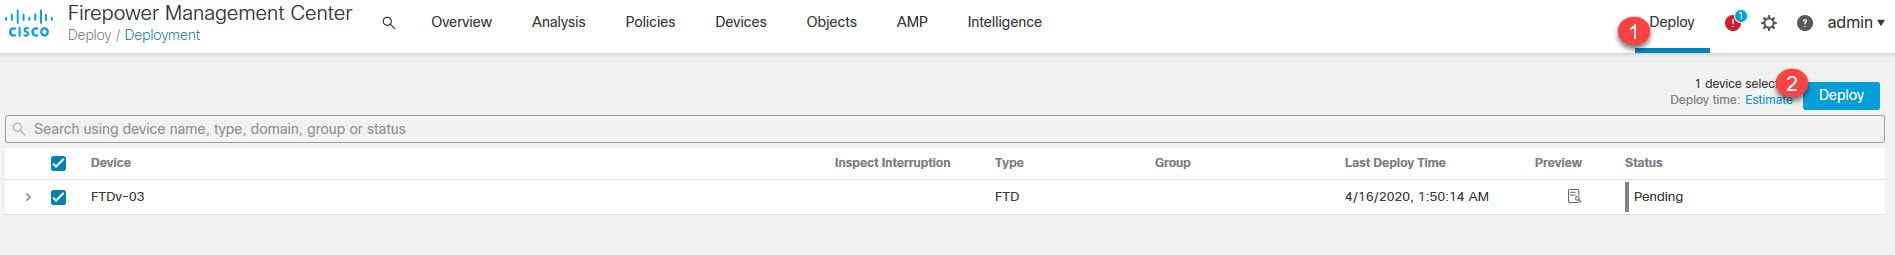 FMC_AnyConnect_DHCP_Internal_Pool0044